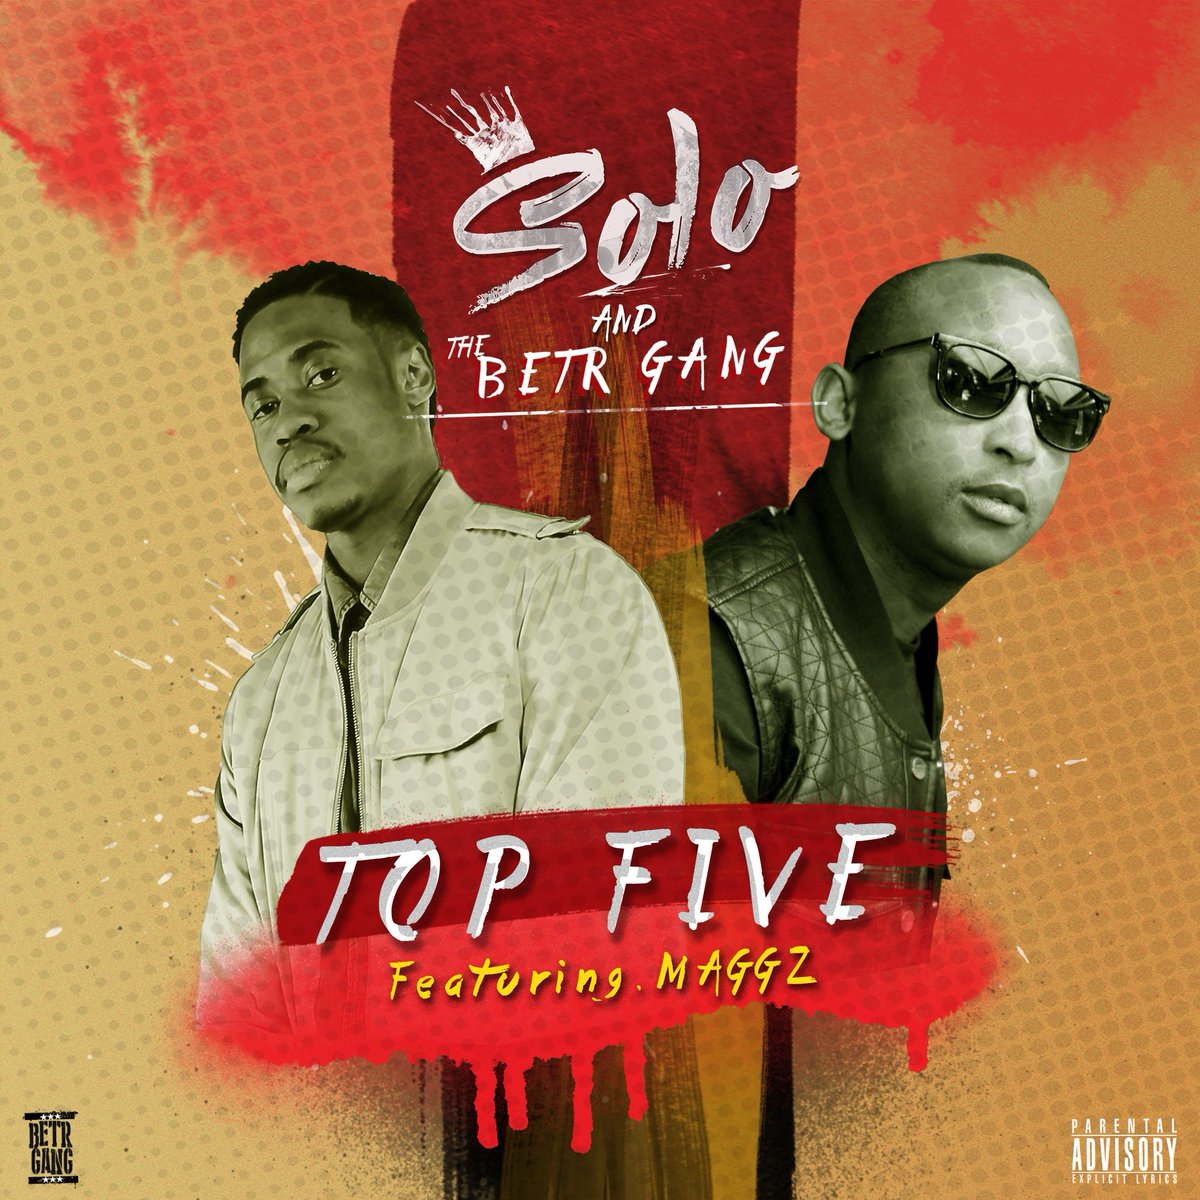 Solo & The BETR Gang – Top Five Ft. Maggz